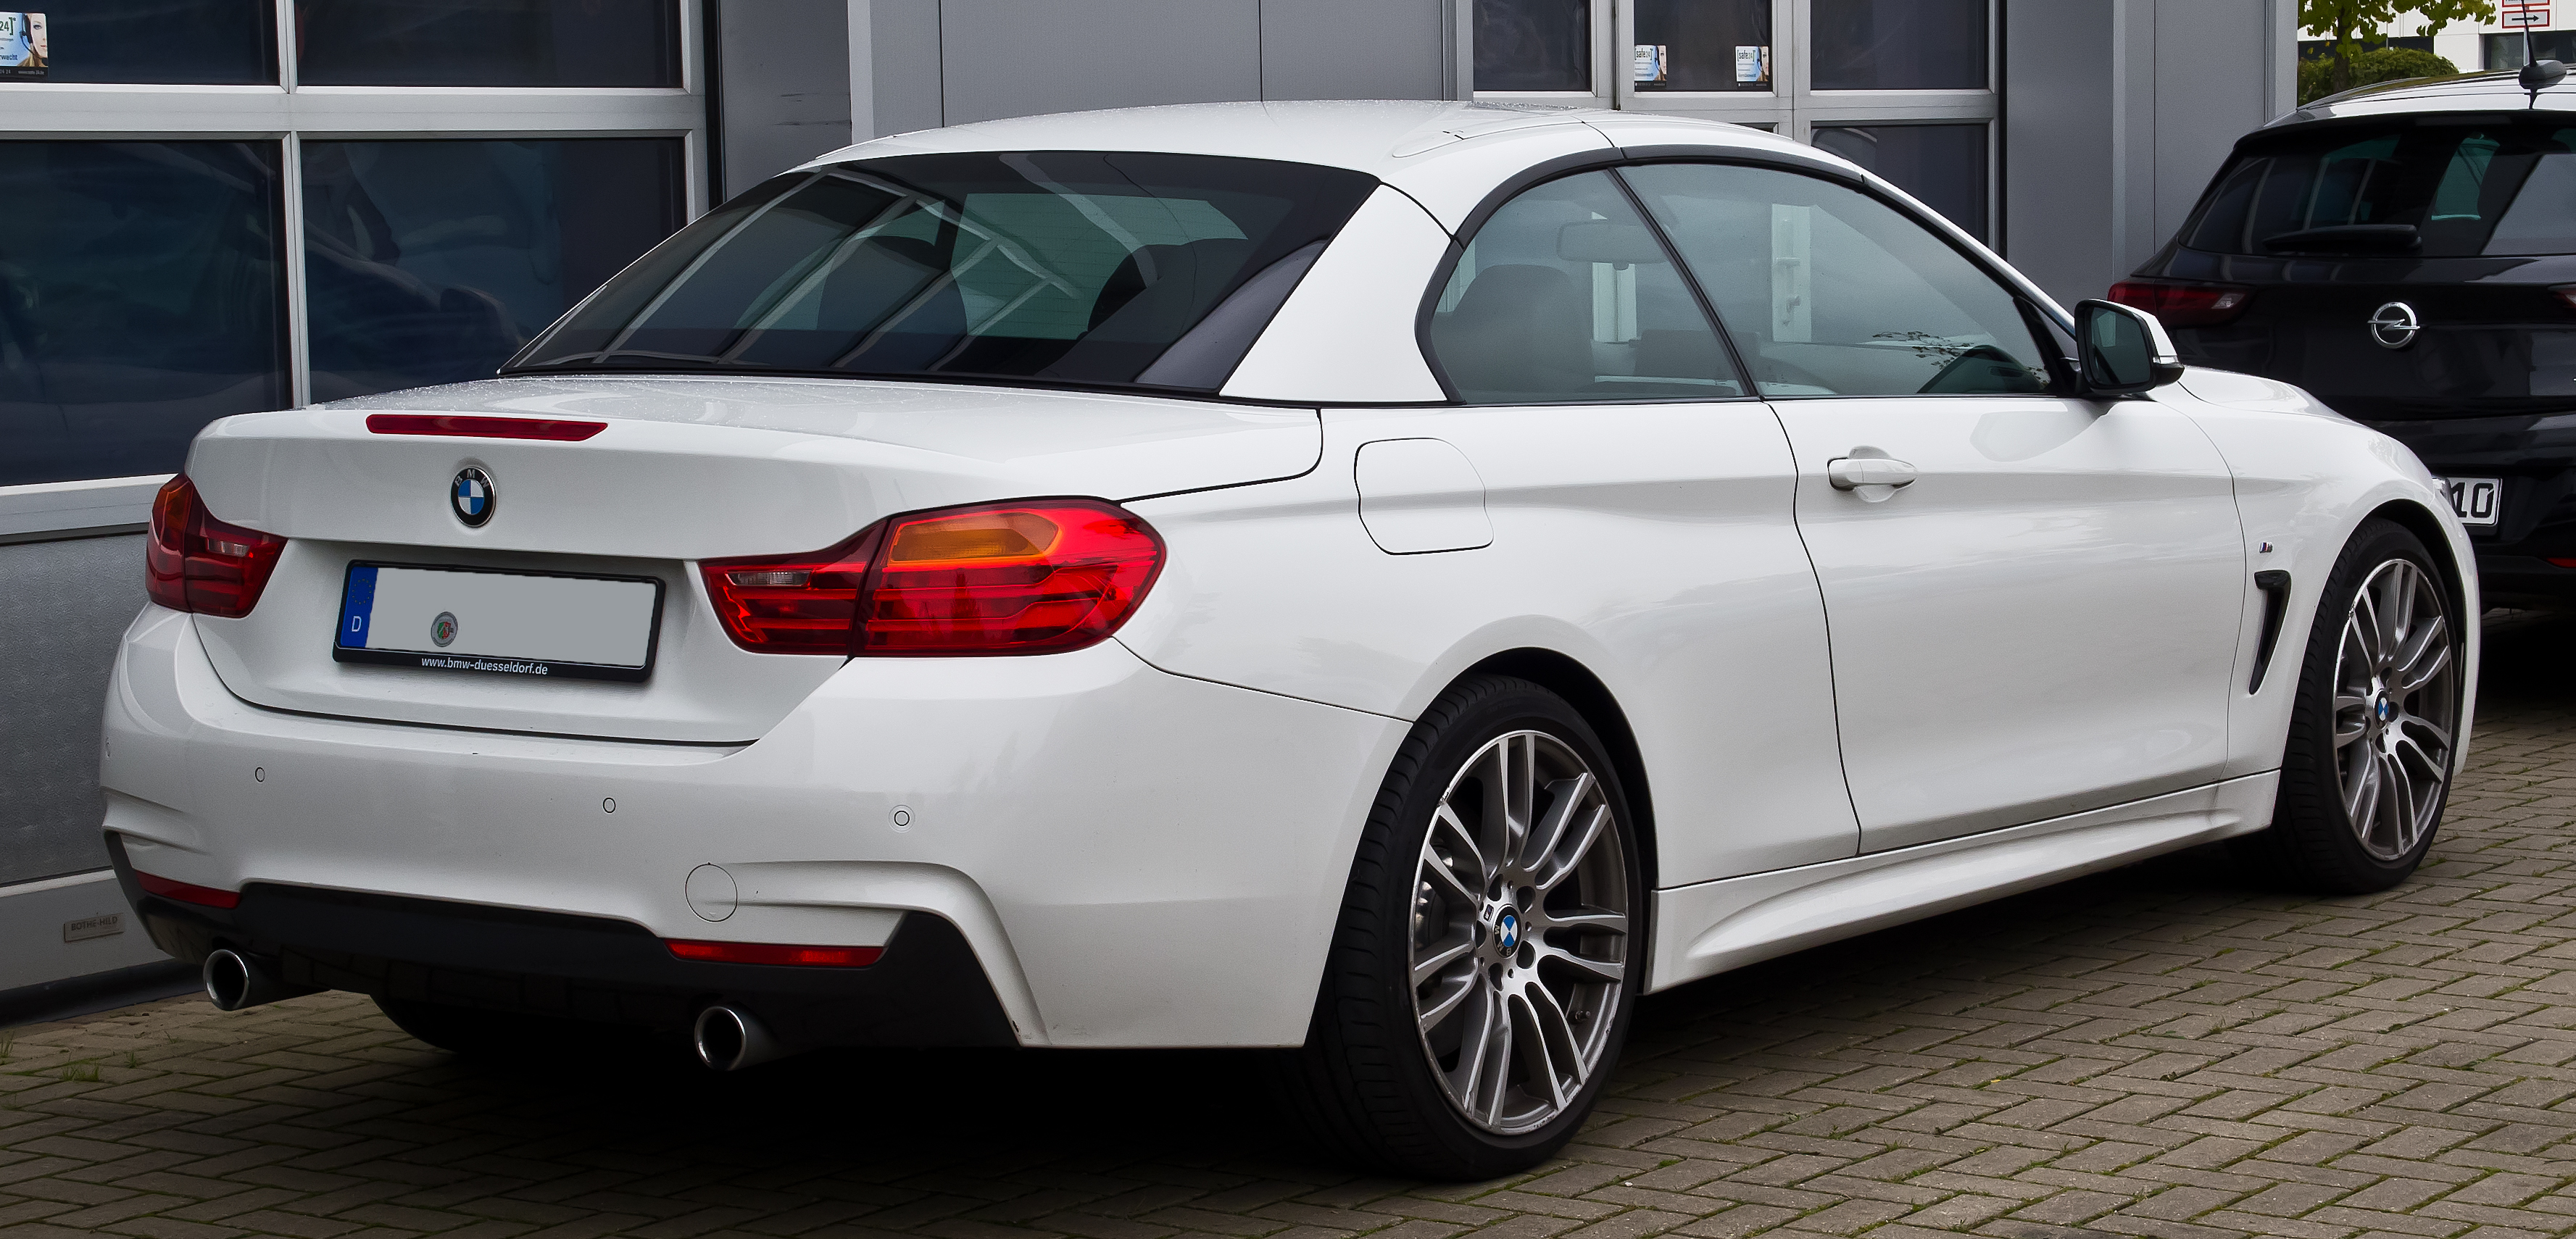 file bmw 435i cabriolet m sport f33 heckansicht 18 oktober 2015 d. Black Bedroom Furniture Sets. Home Design Ideas